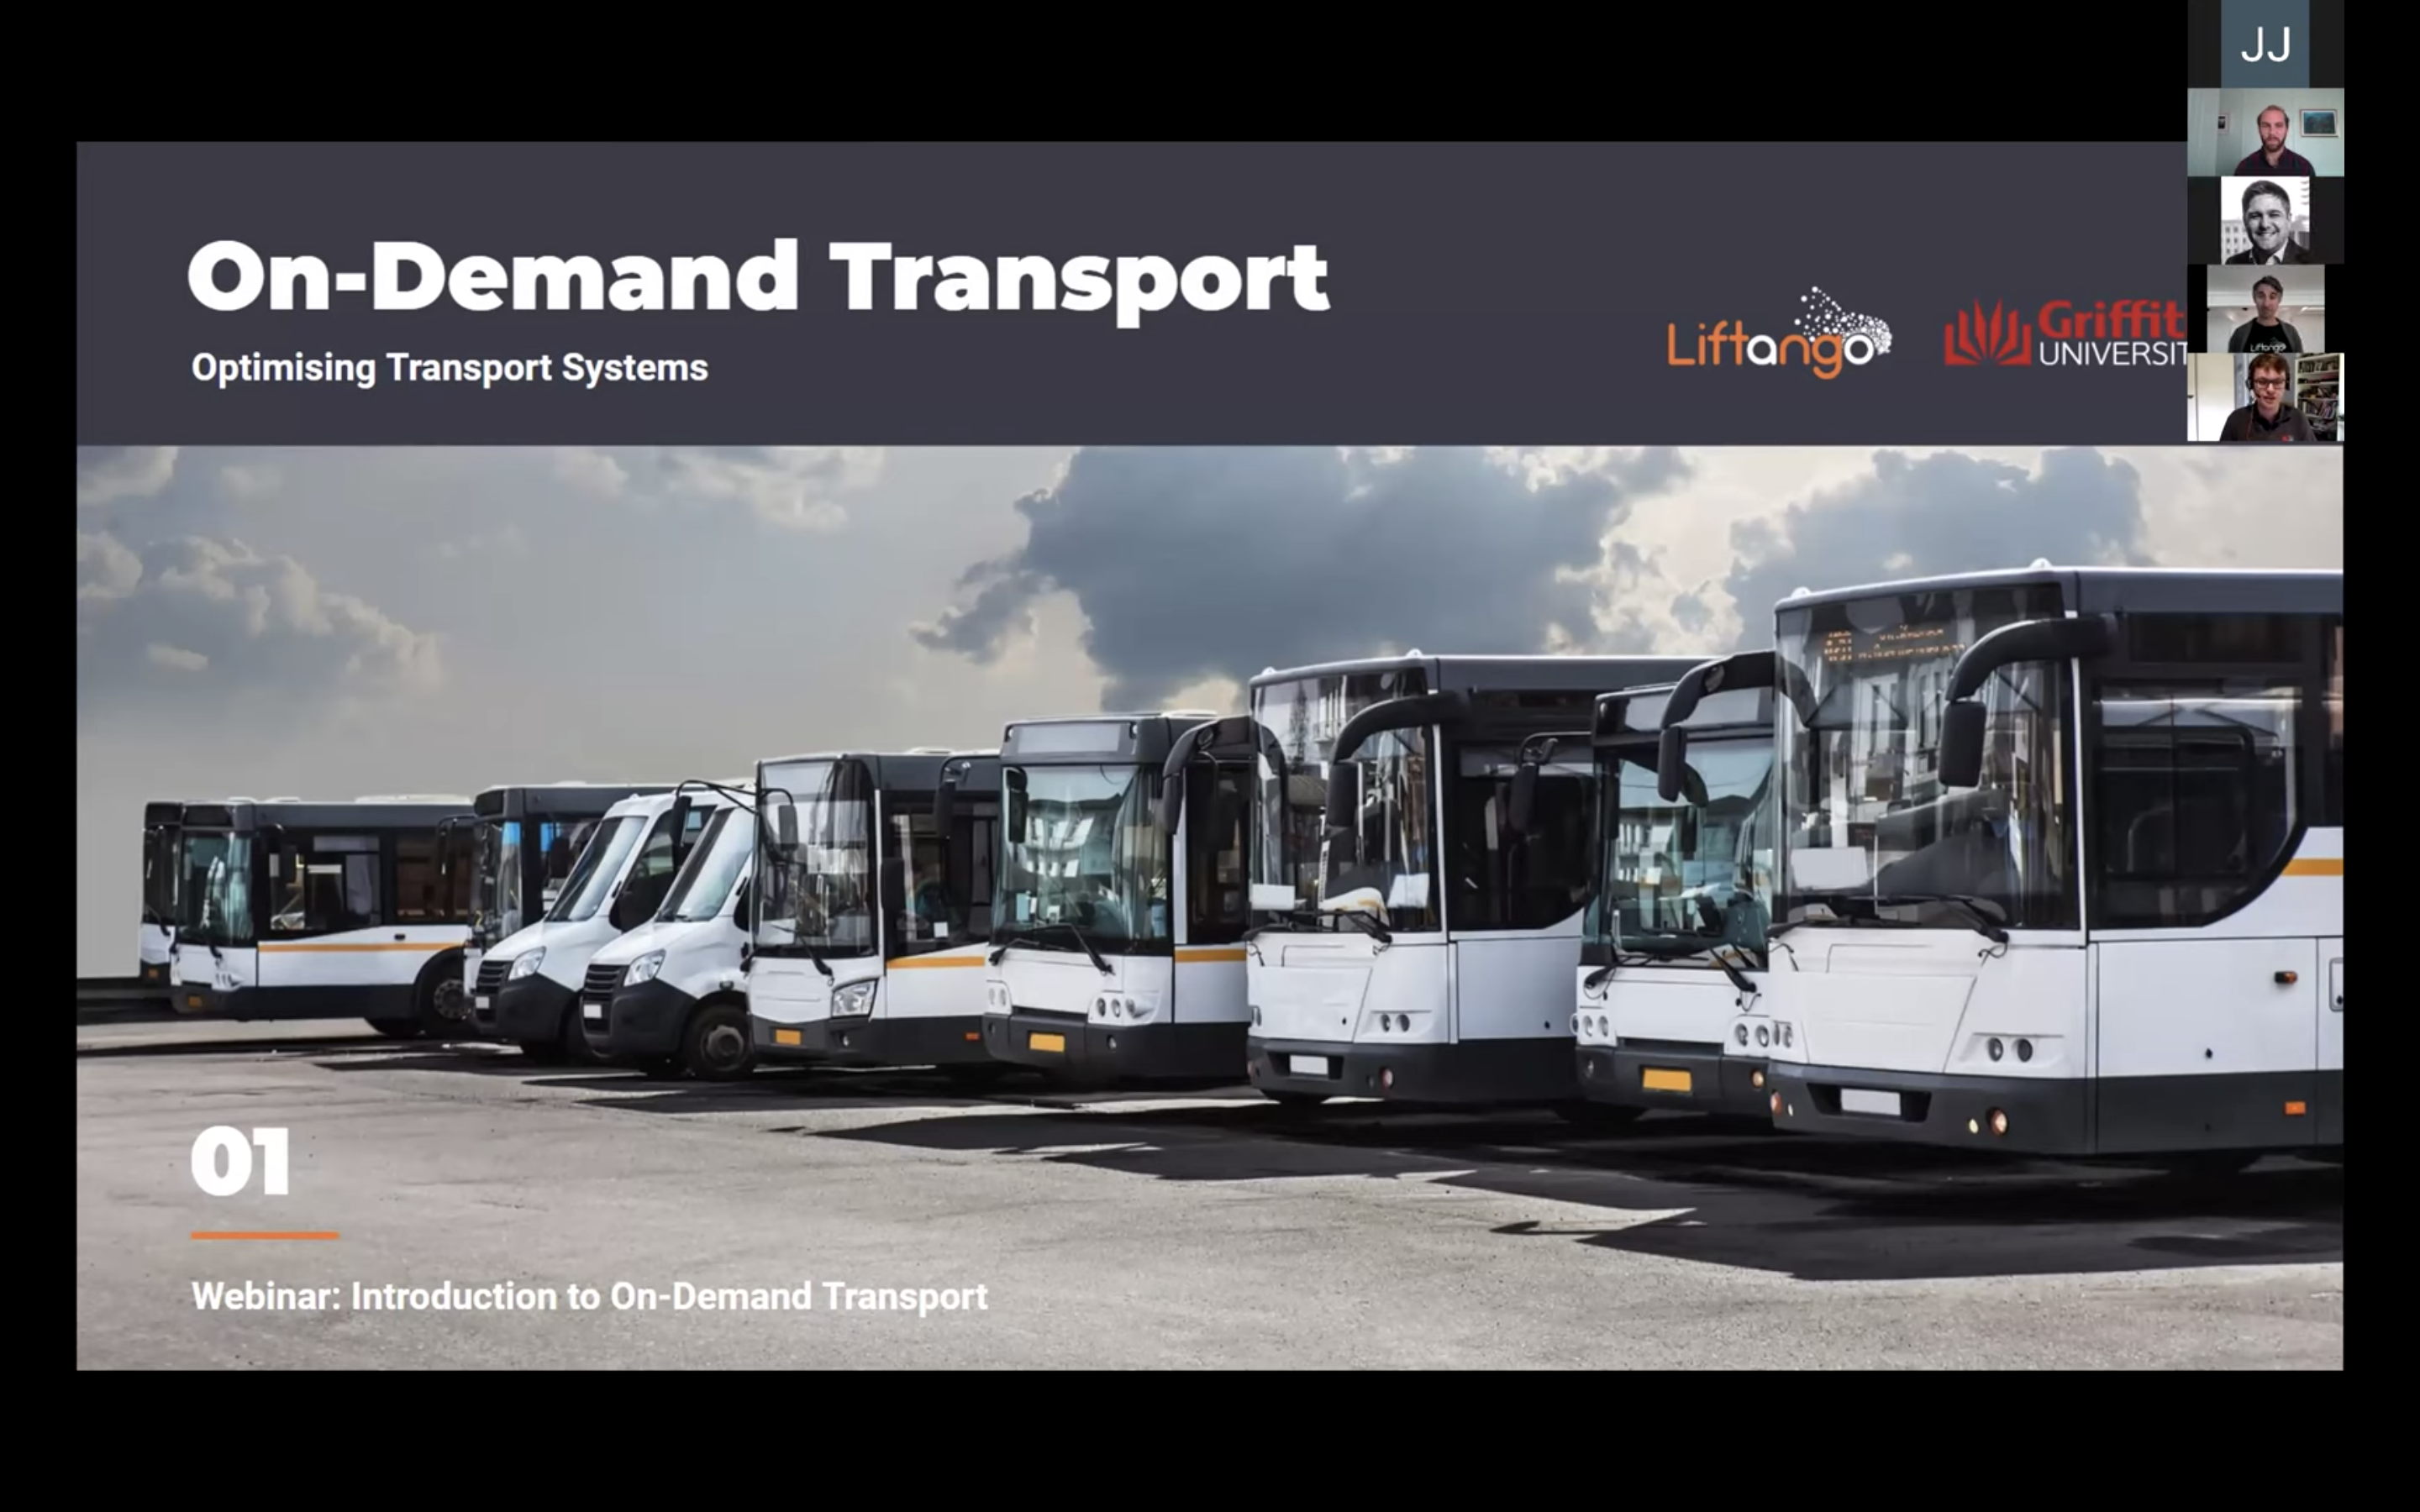 An Introduction to On-Demand Transport